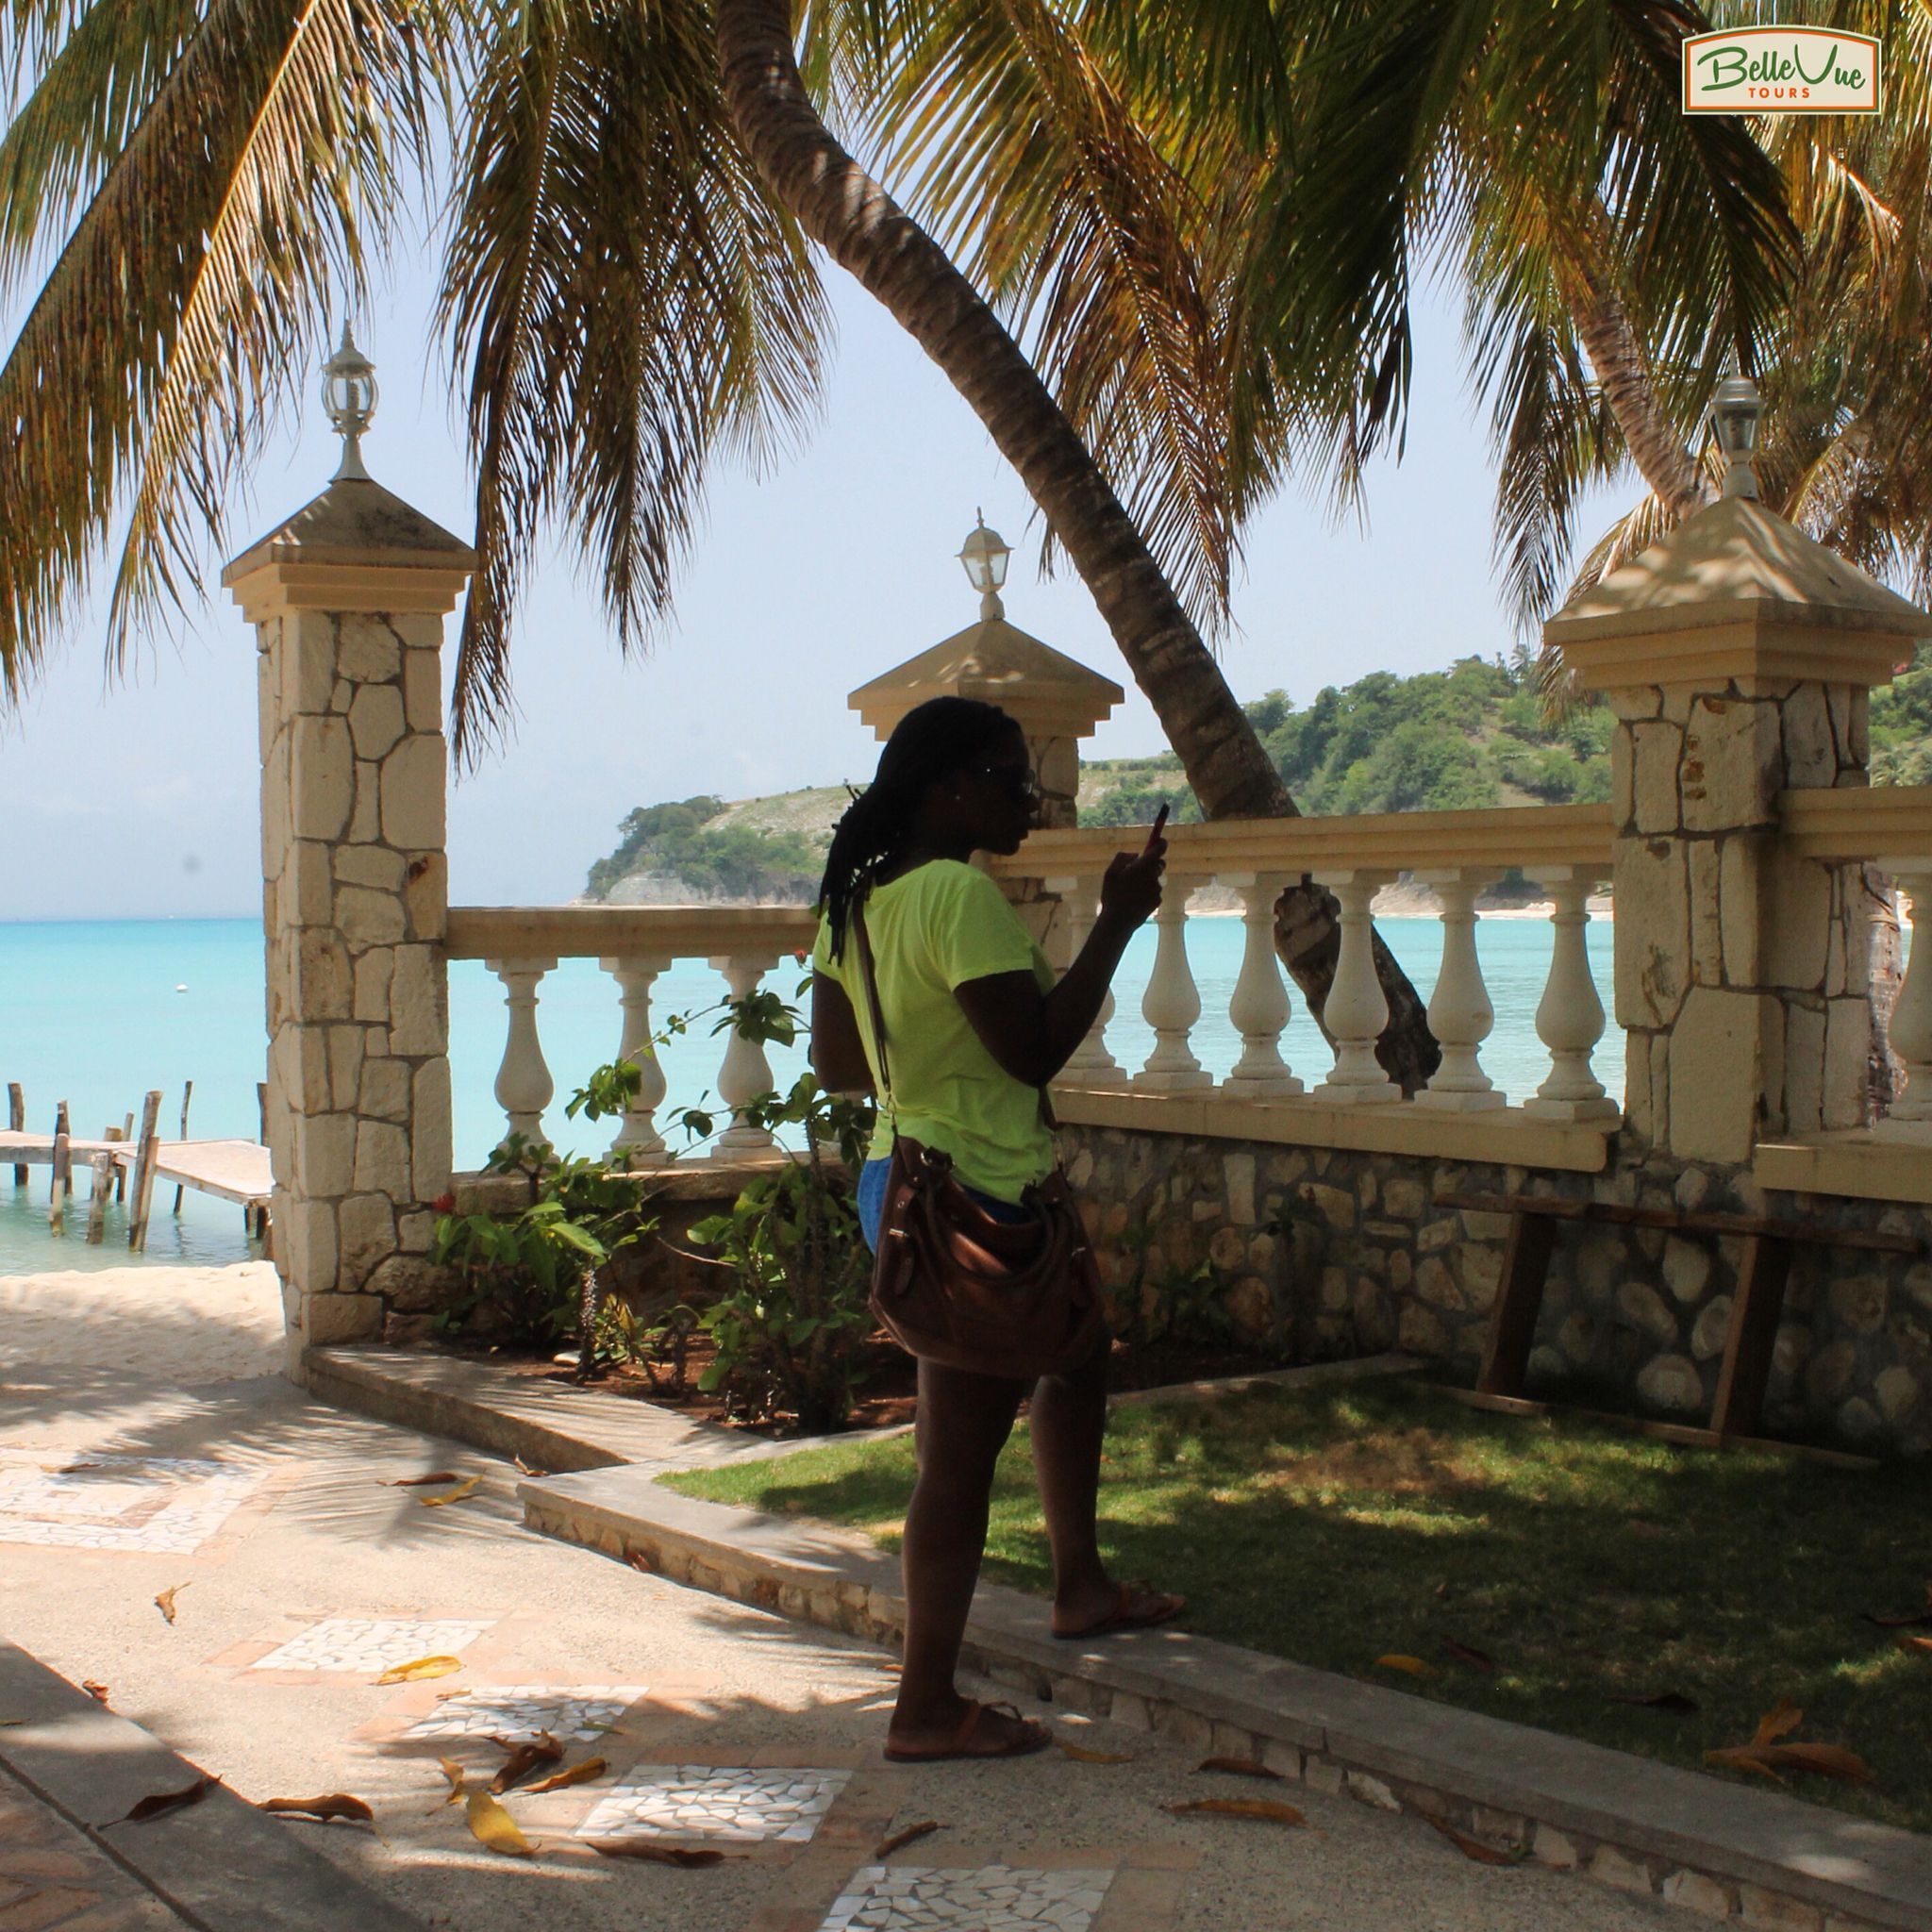 Belle Vue Tours How We See Haïti? Beautiful, with a Rich History & Culture Worthy of Exploring...How Do You See Haïti?